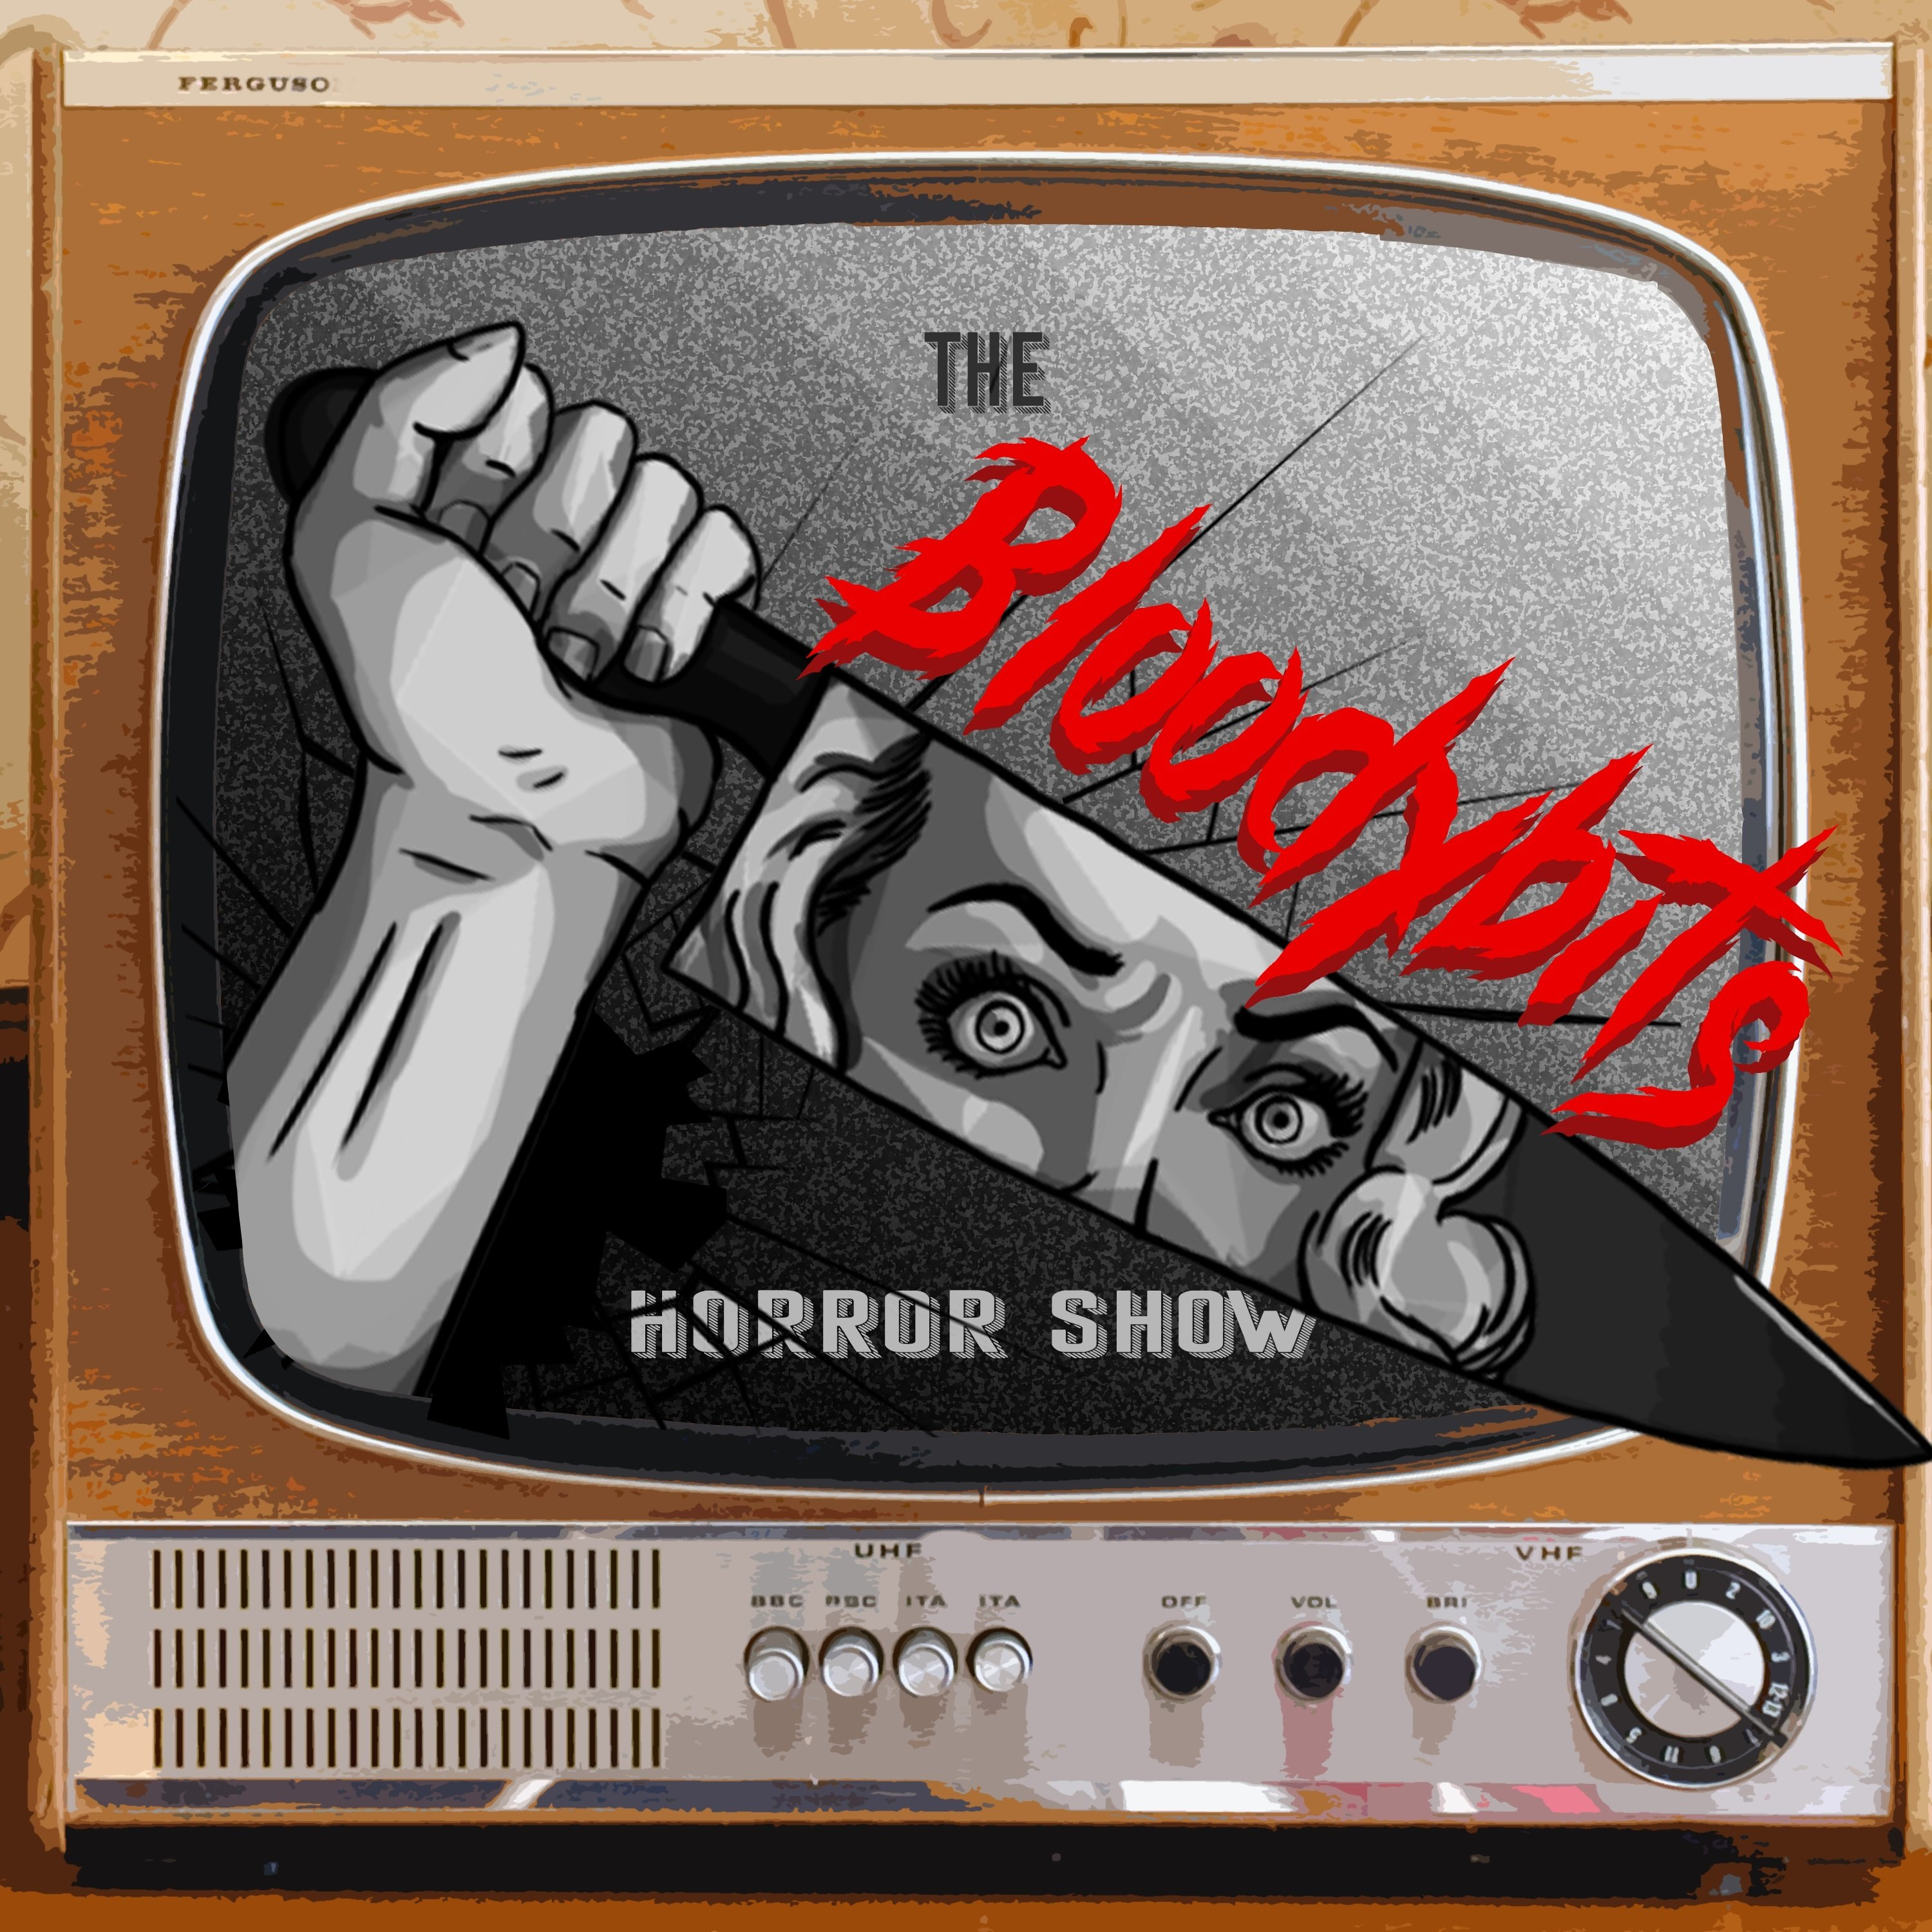 The Bloodybits Horror Show Album Art